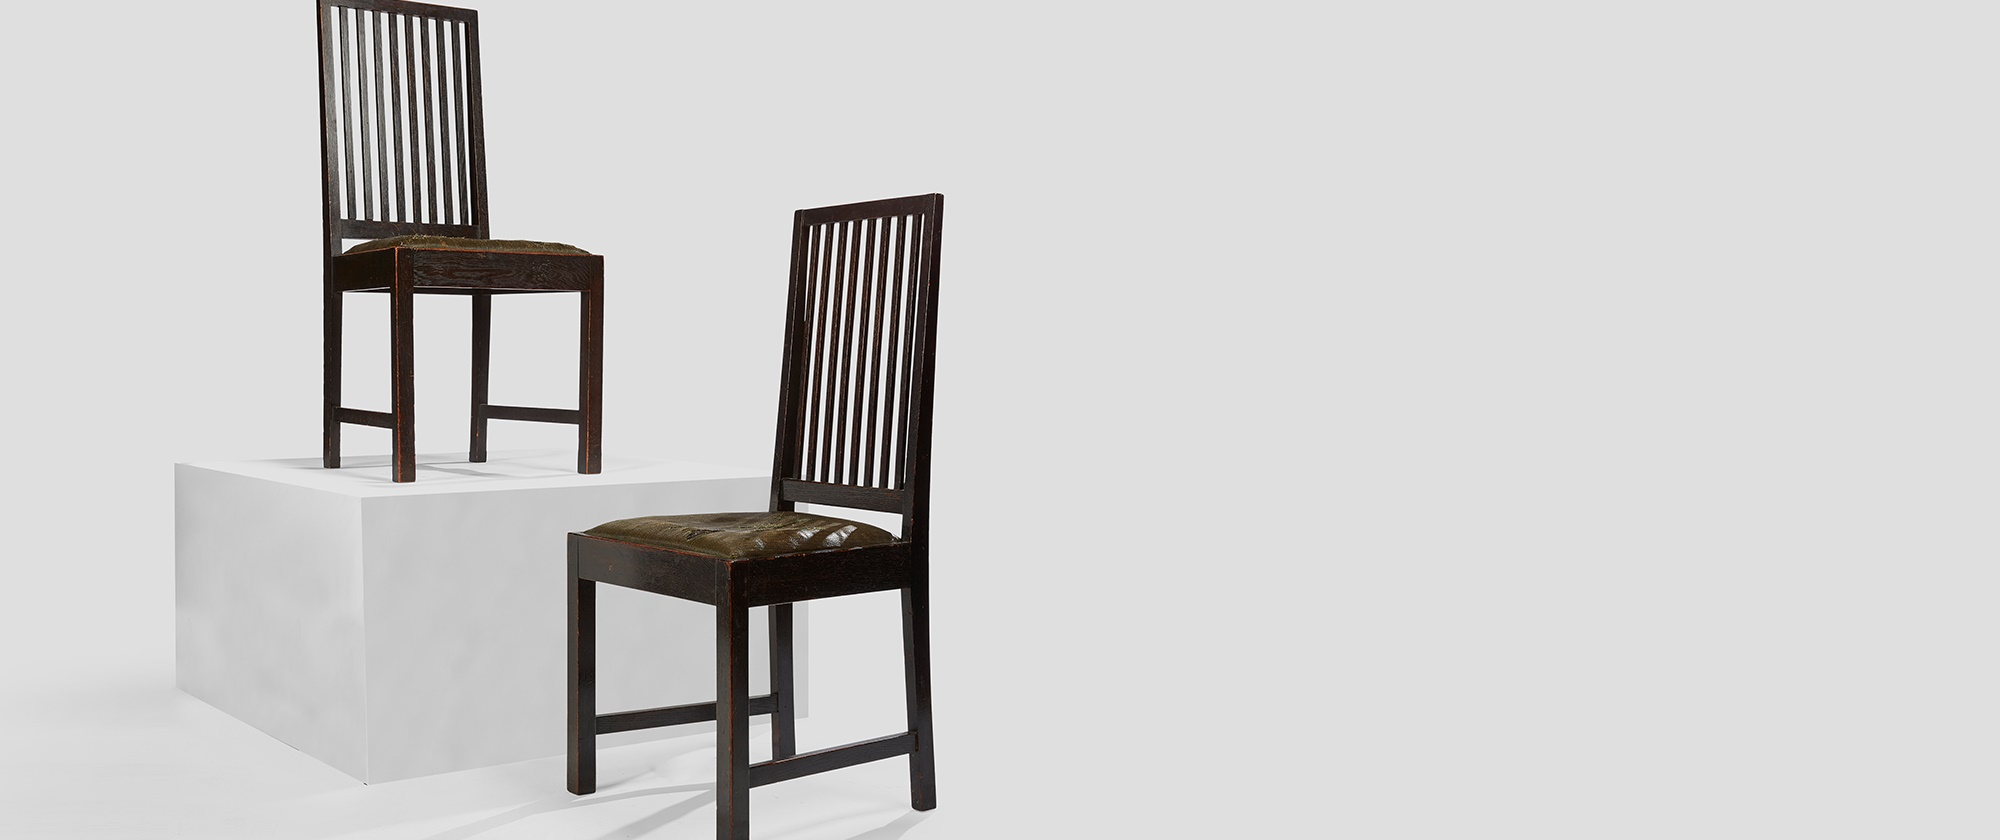 Charles Rennie Mackintosh's 'Brander Back' Dining Chairs